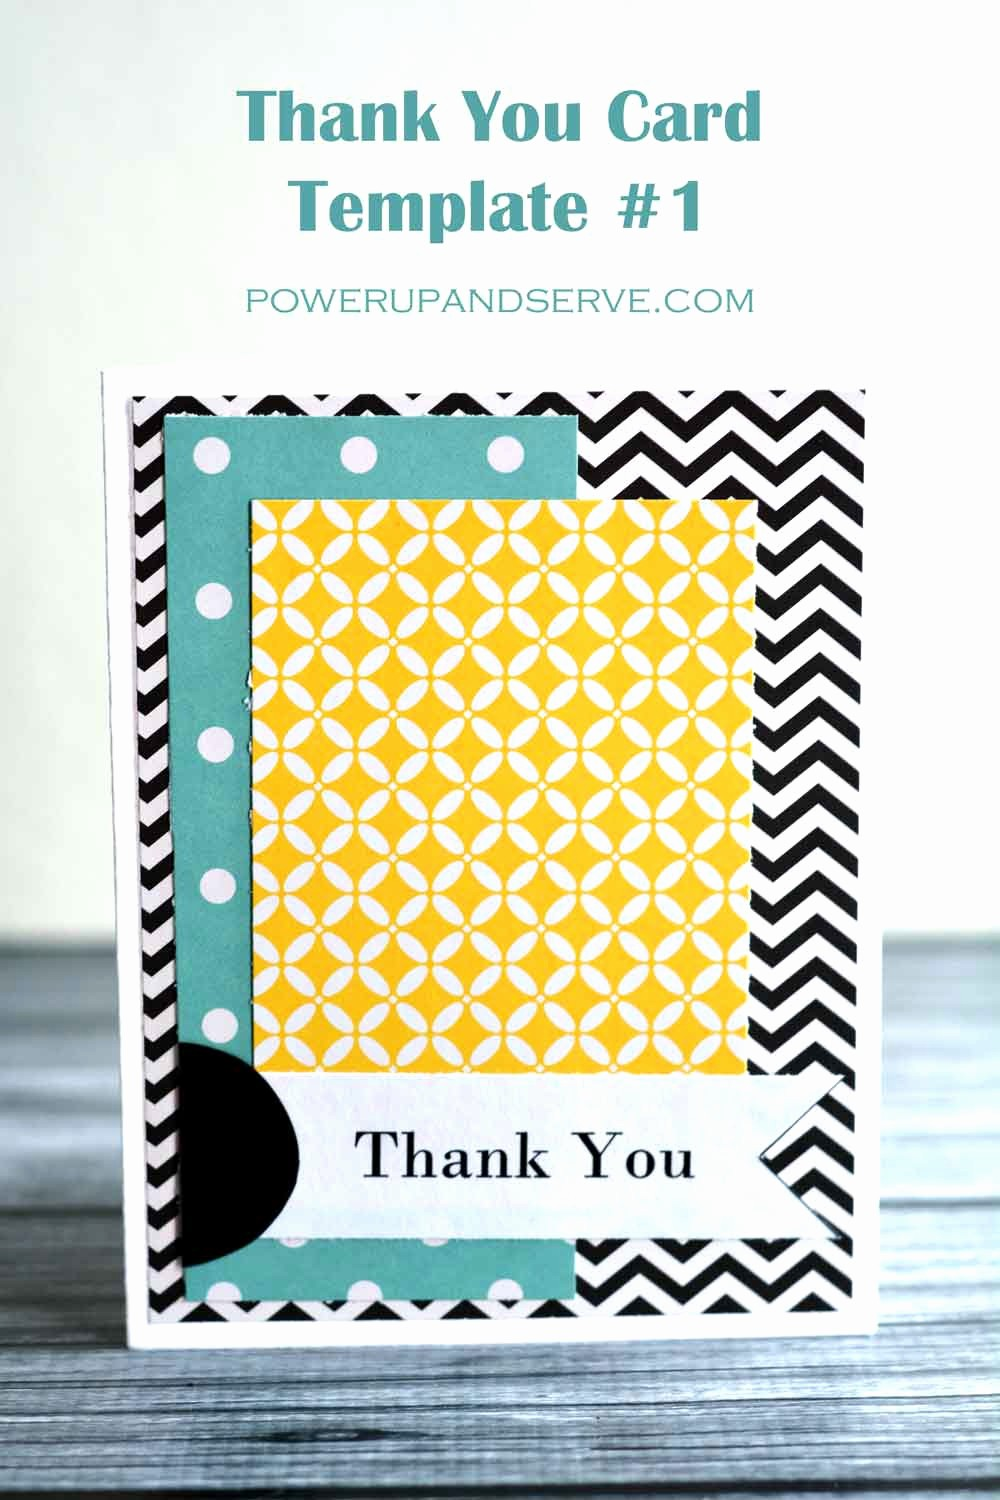 Thank You Card Template Free Inspirational Thank You Card Template 1 Power Up and Serve